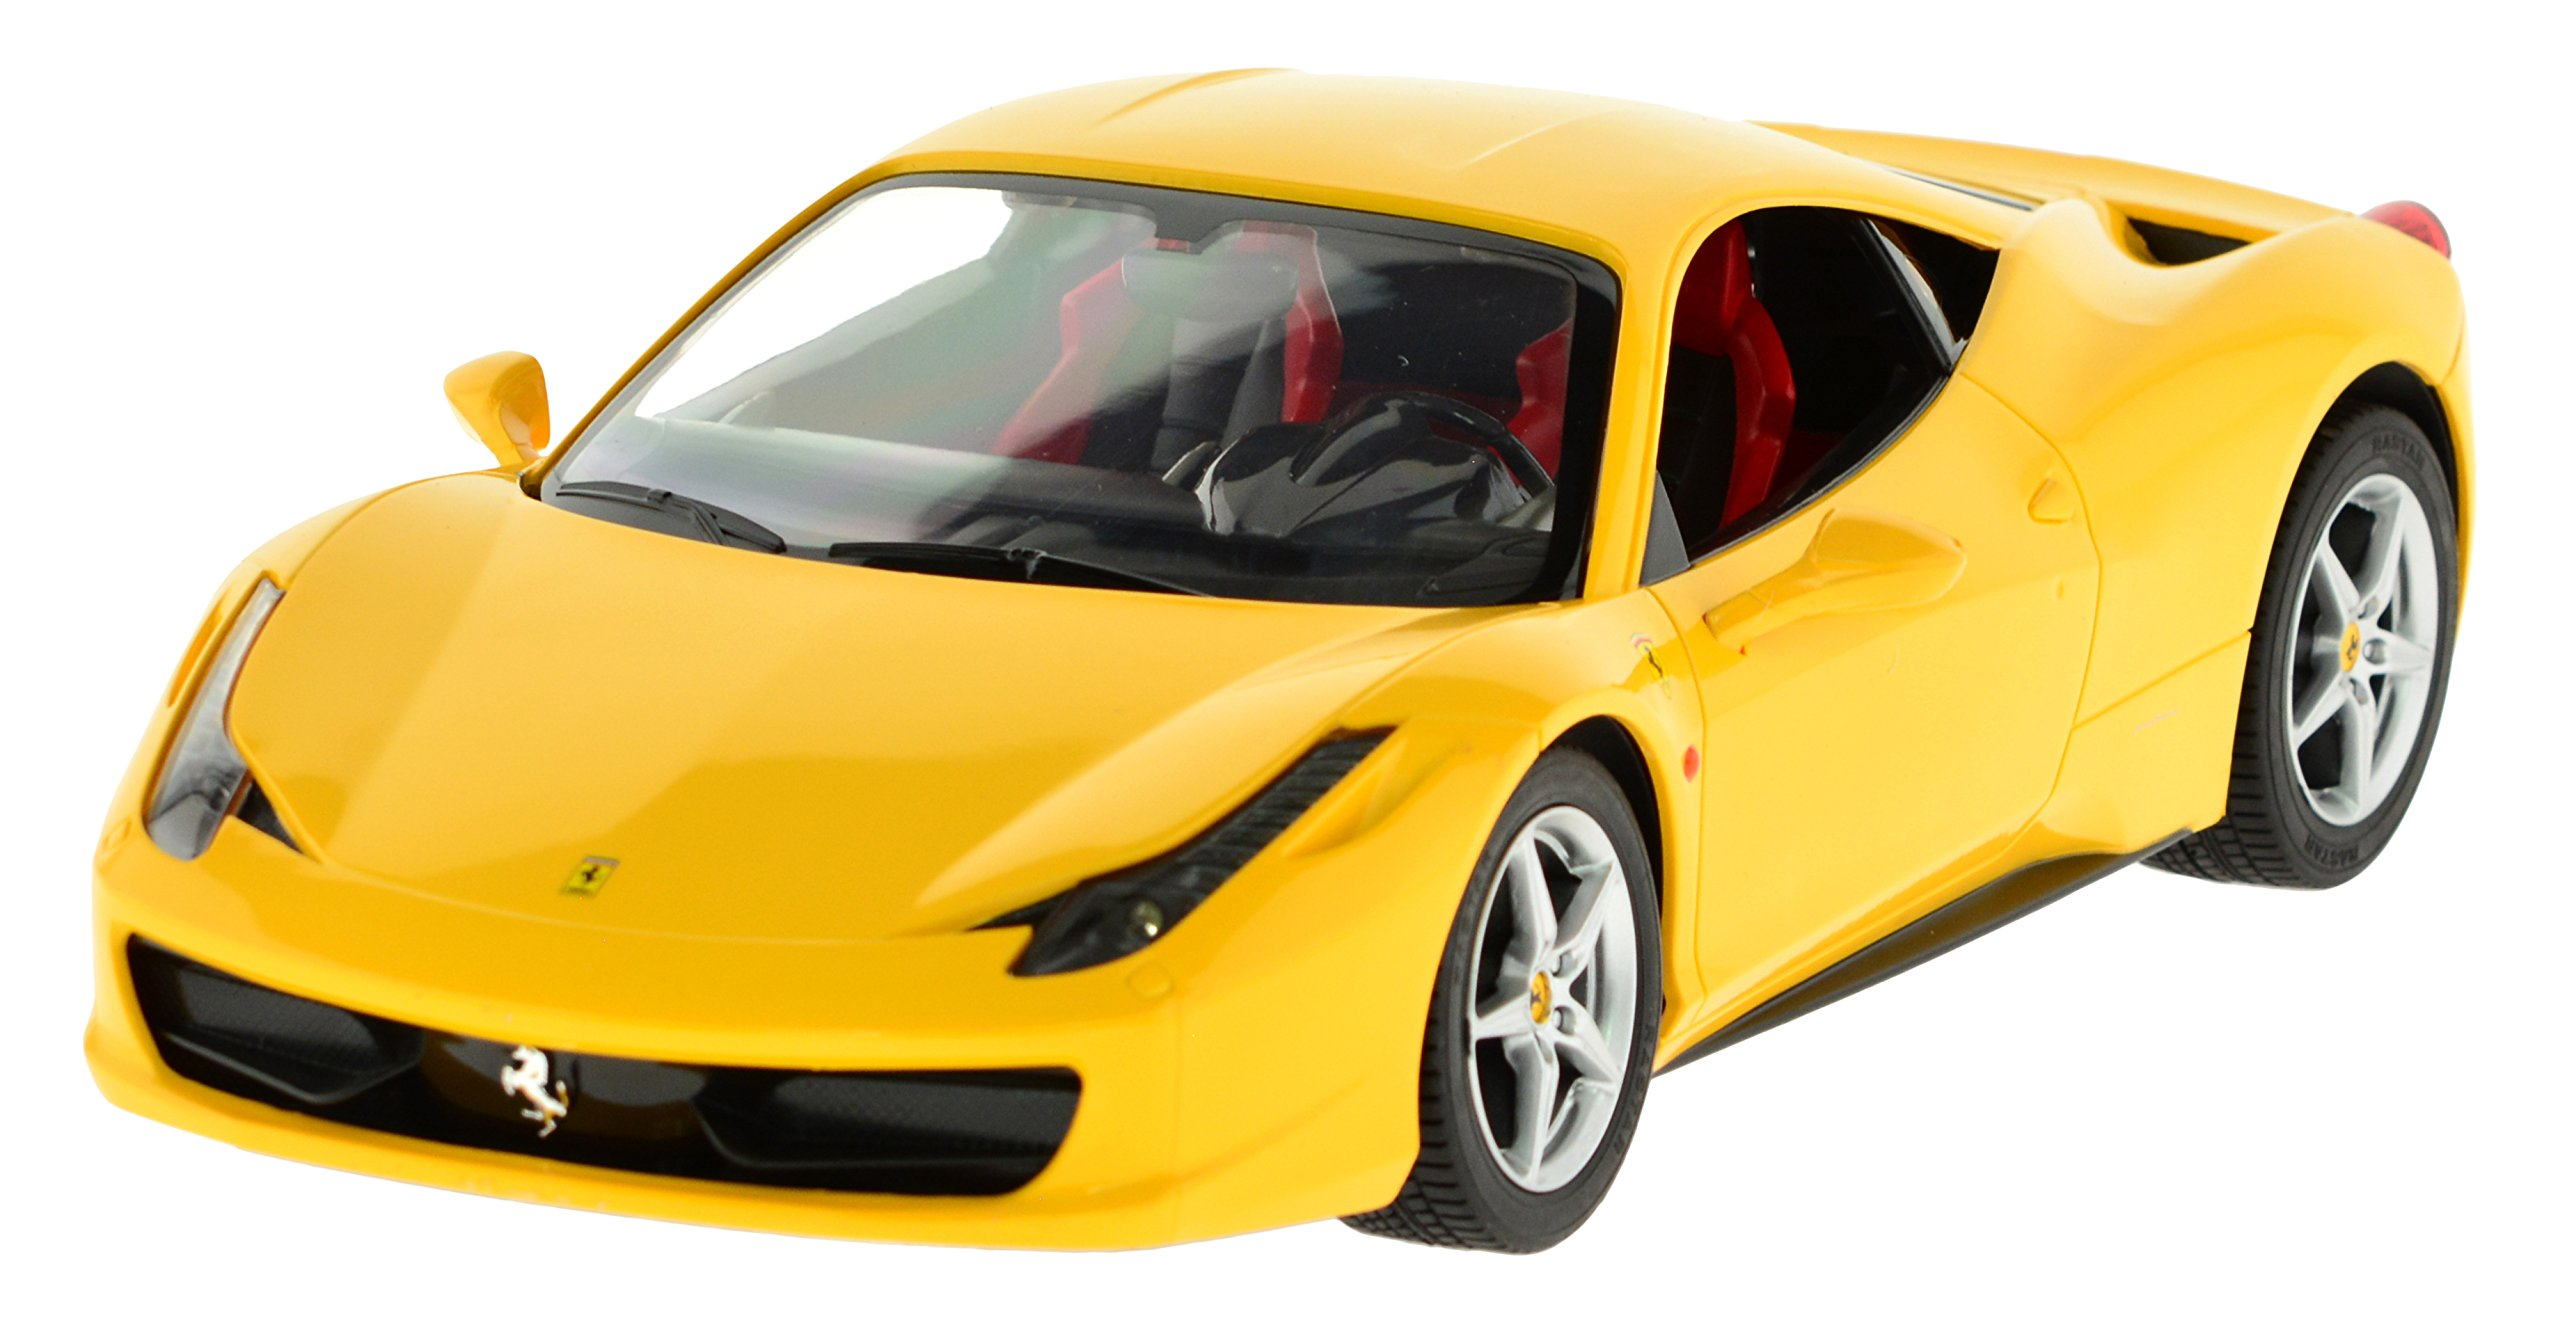 Carmel 1:14 Ferrari 458 Italia 2.4Ghz with Lights Rechargeable Battery, Yellow by Carmel